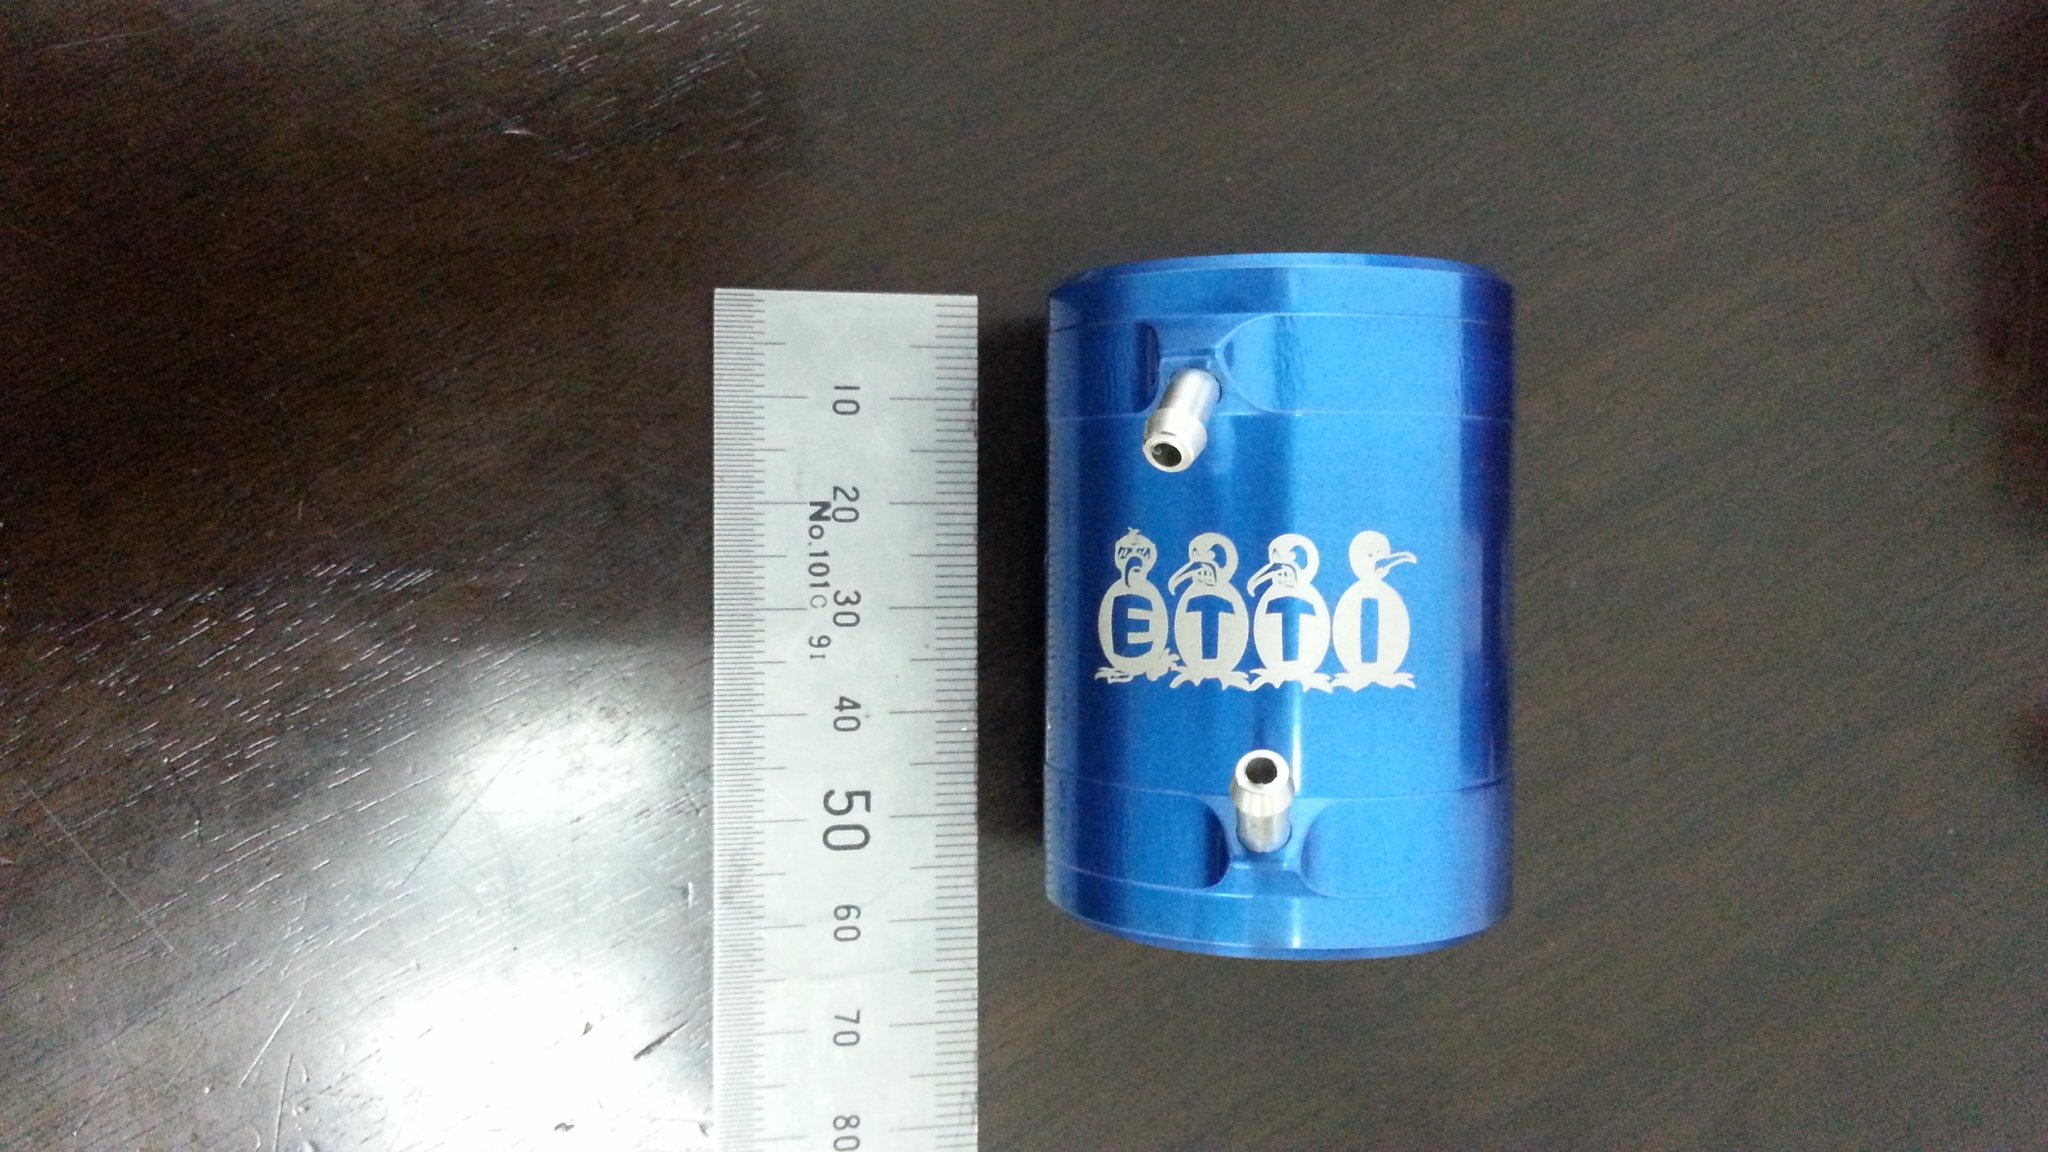 B36 Anodized Blue Motor Cooler (L:55mm)